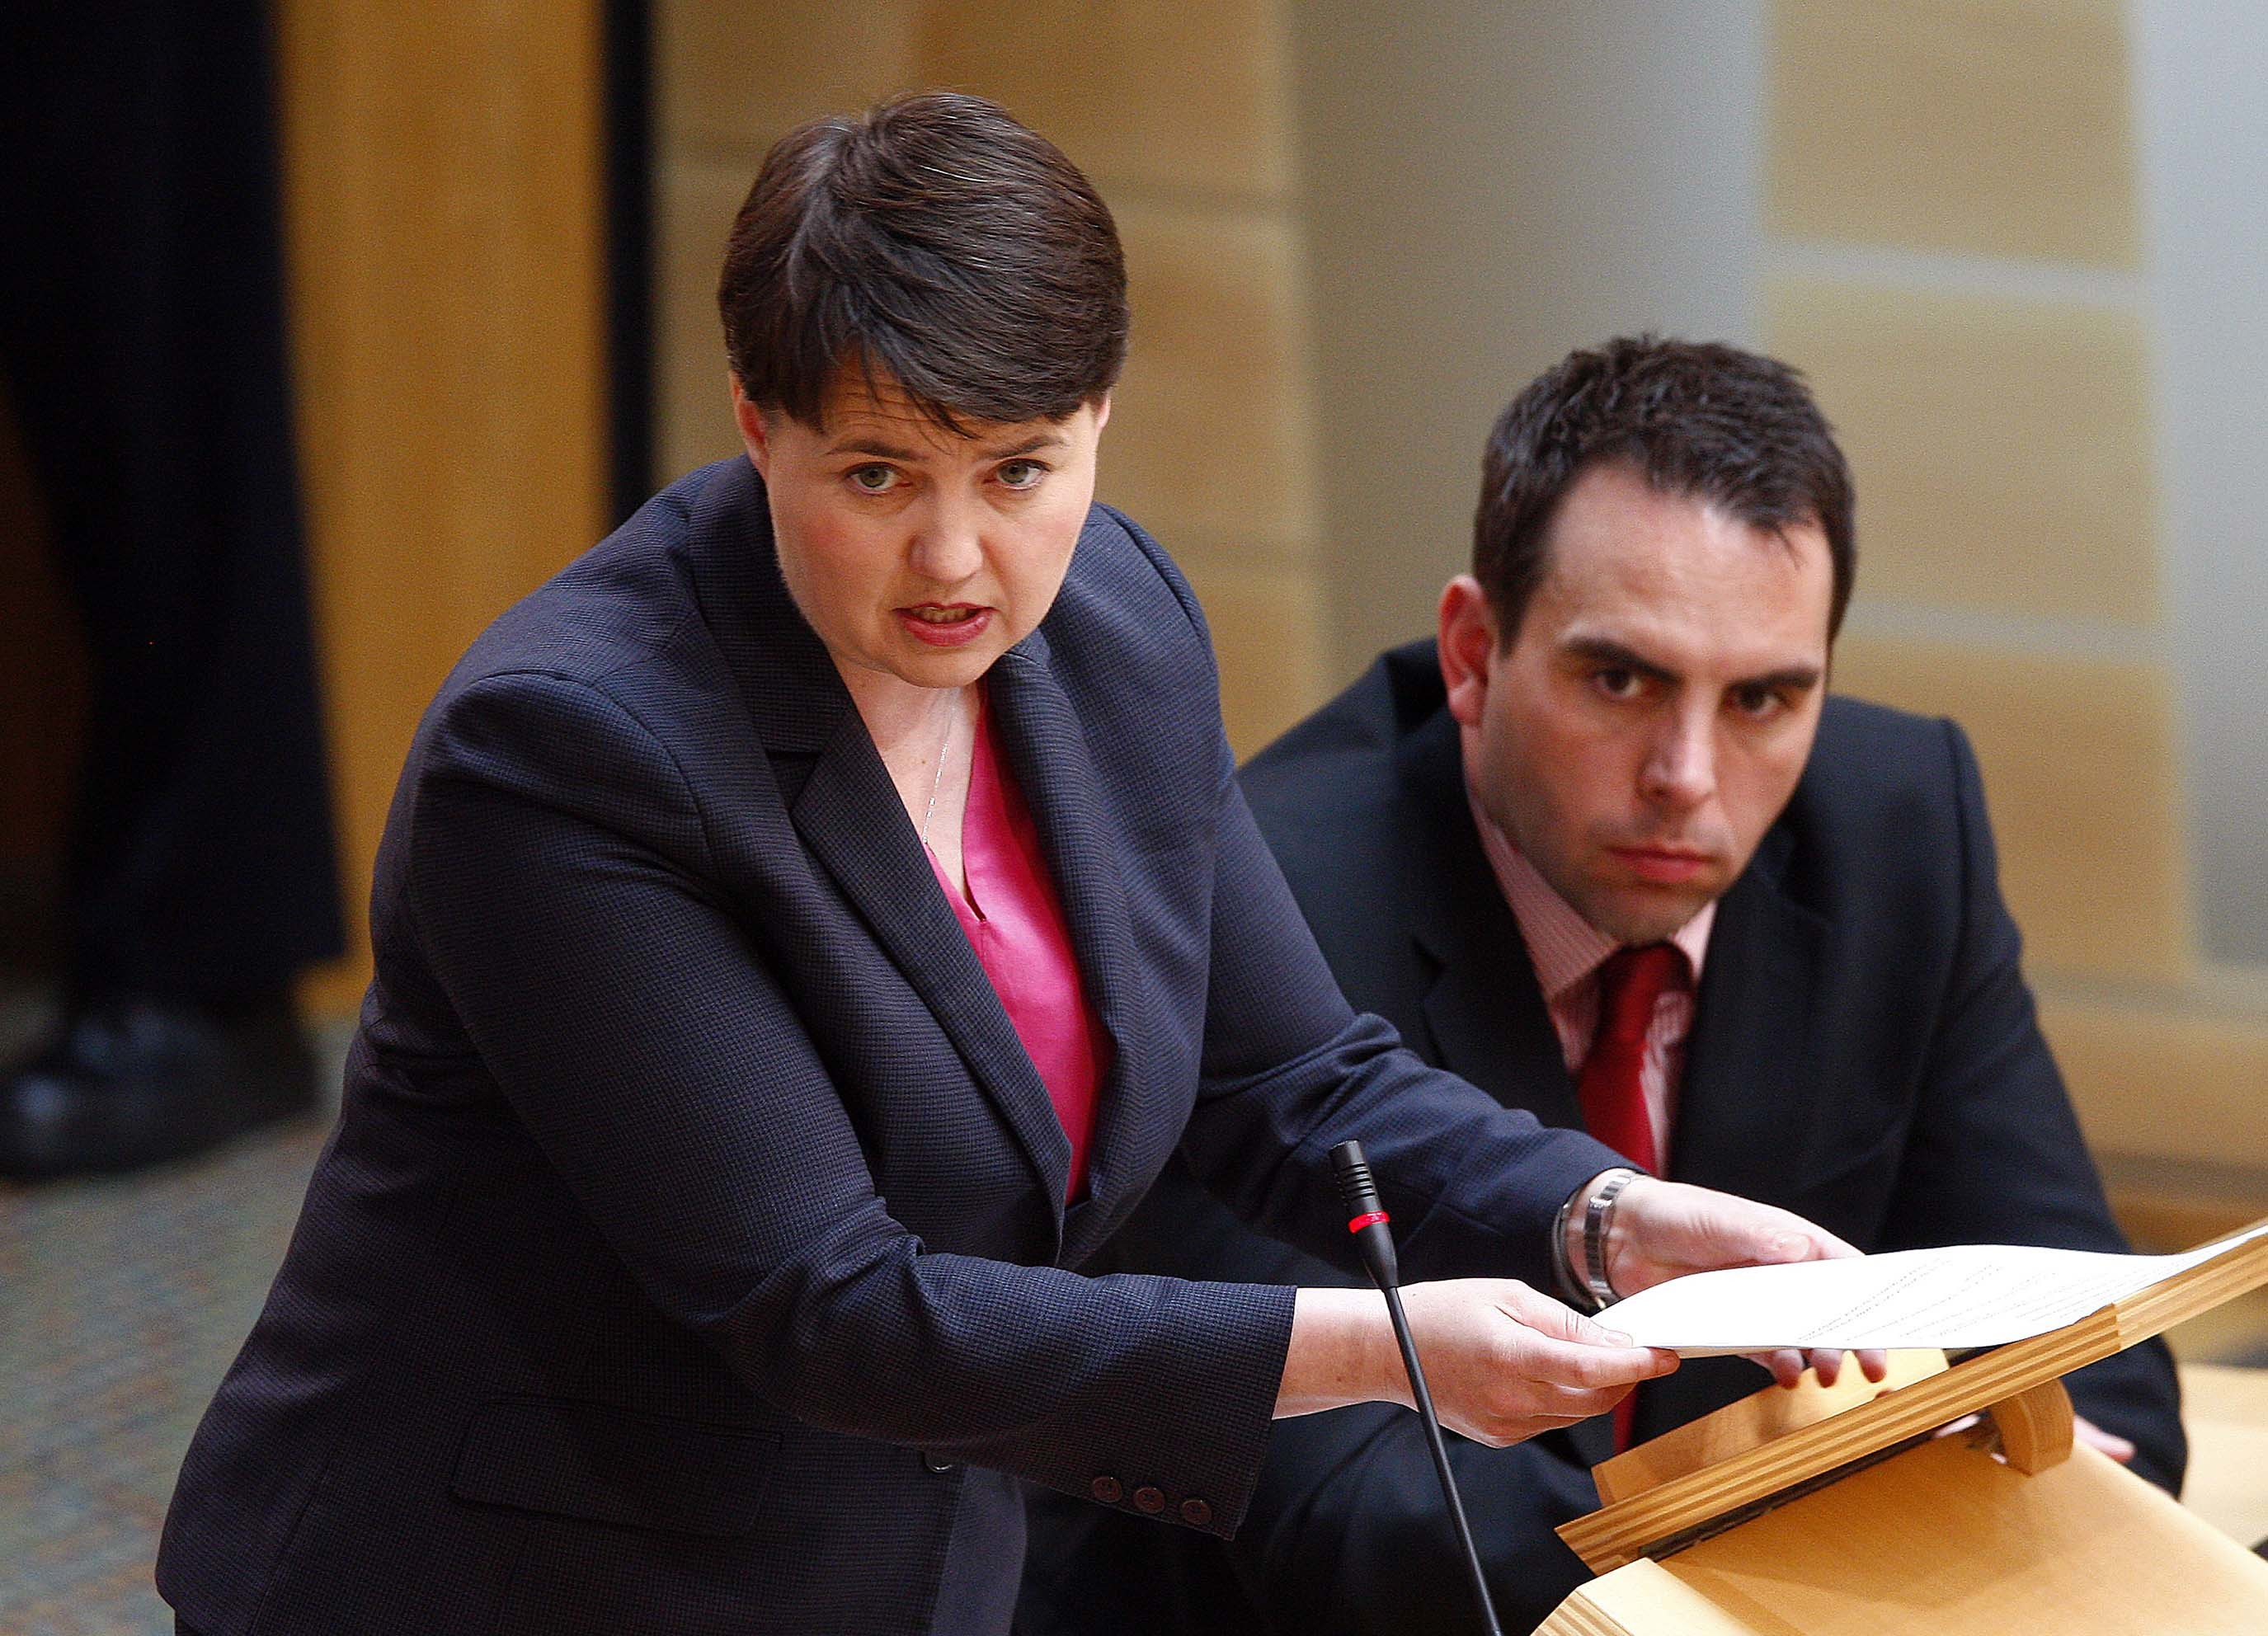 Leader of the Scottish Conservative Party Ruth Davidson MSP speaking following an urgent Statement by the First Minister on the Attack on Manchester. 23 May 2017. Pic - Andrew Cowan/Scottish Parliament